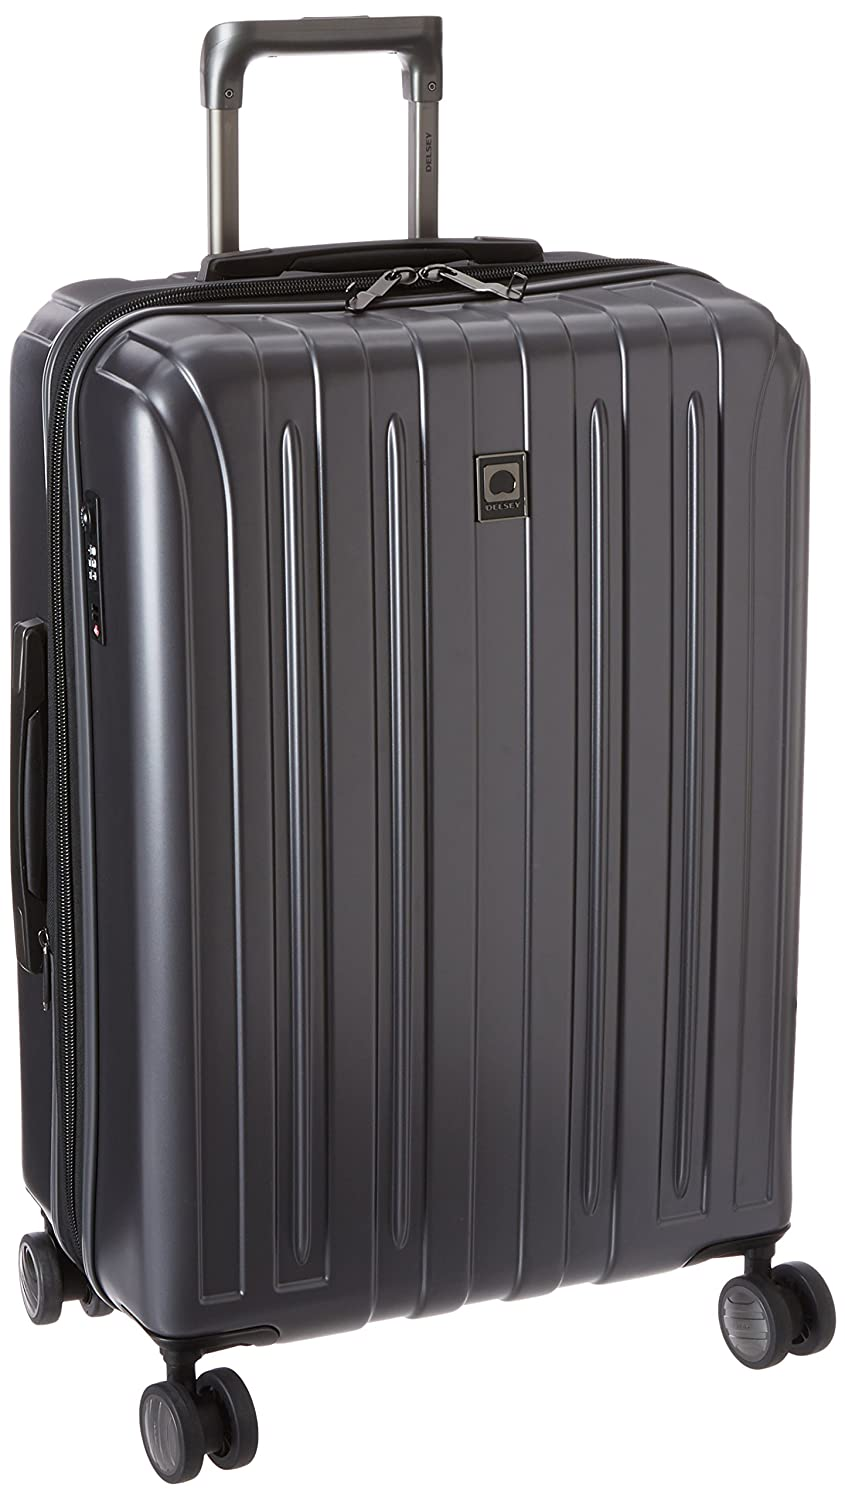 960a9c48313d on sale Delsey Luggage Helium Titanium 25 Inch EXP Spinner Trolley ...